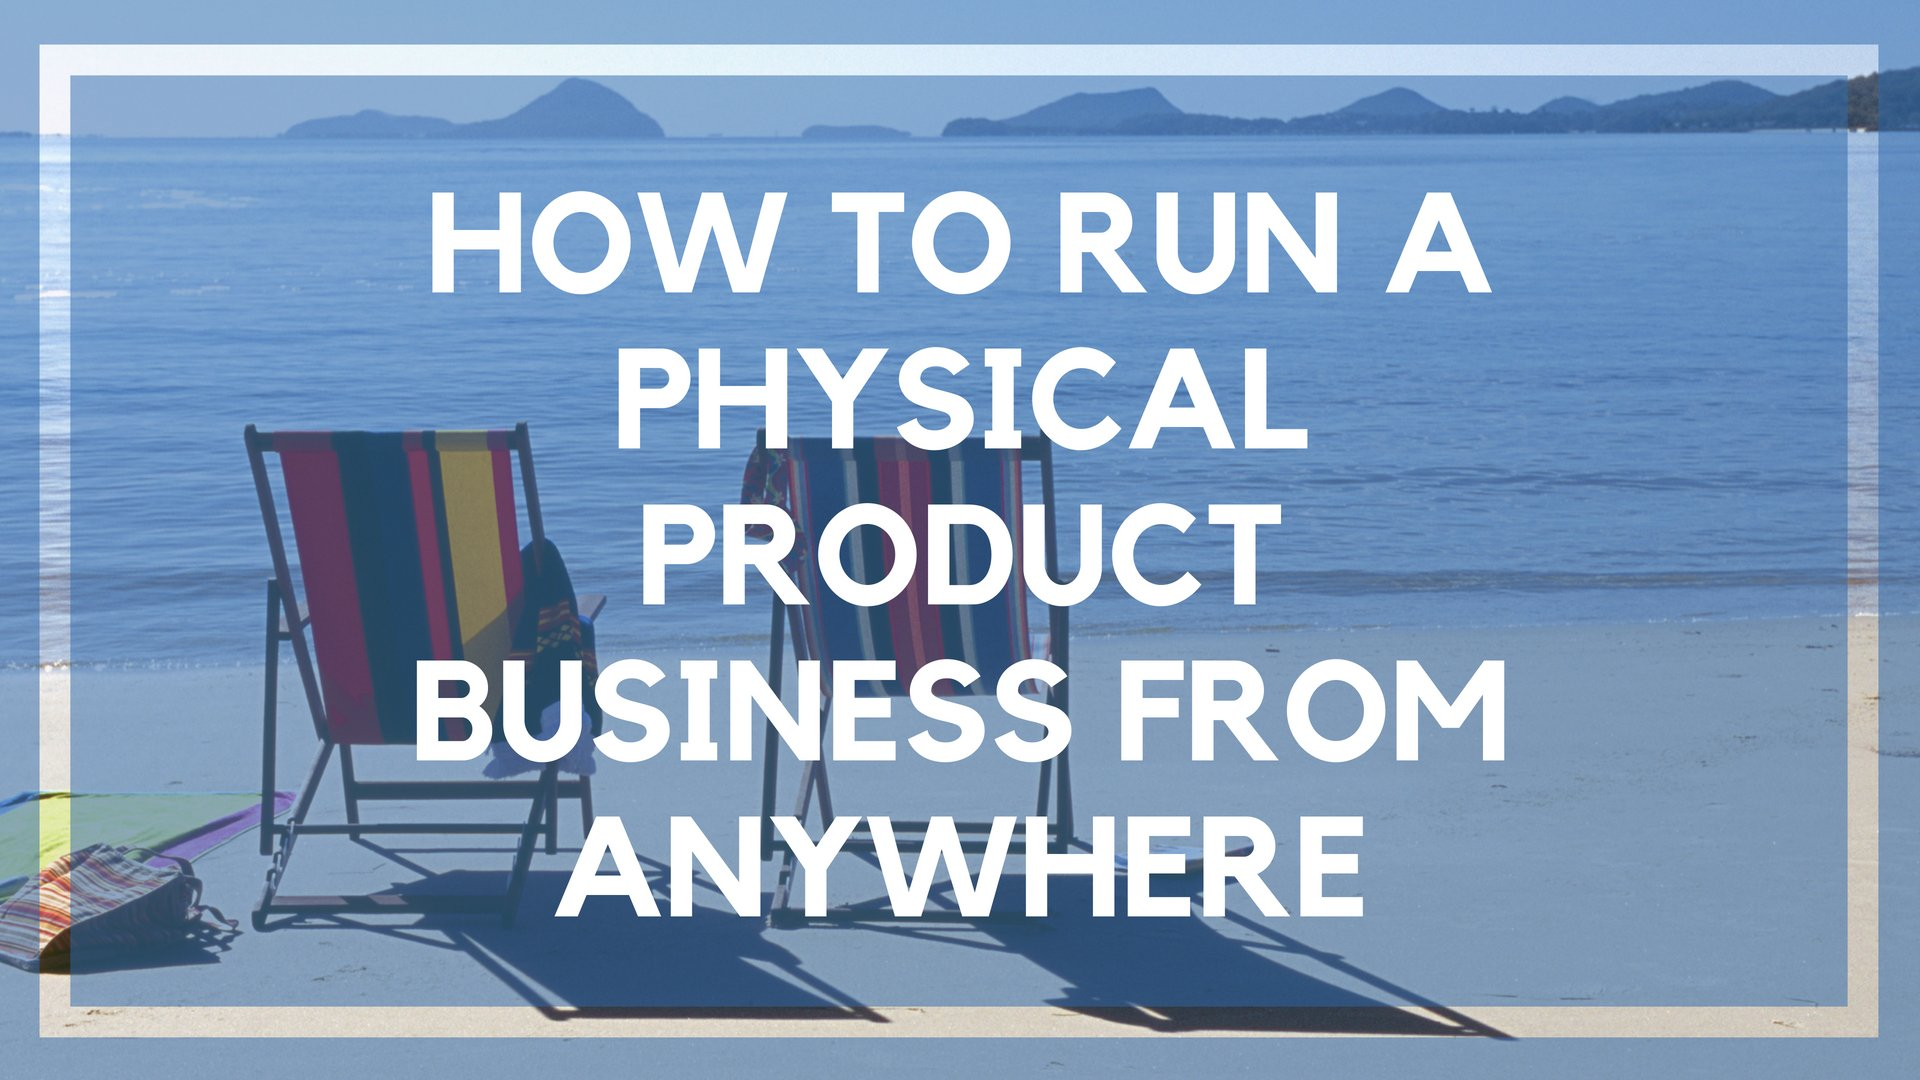 How to Run a Physical Product Business from Anywhere